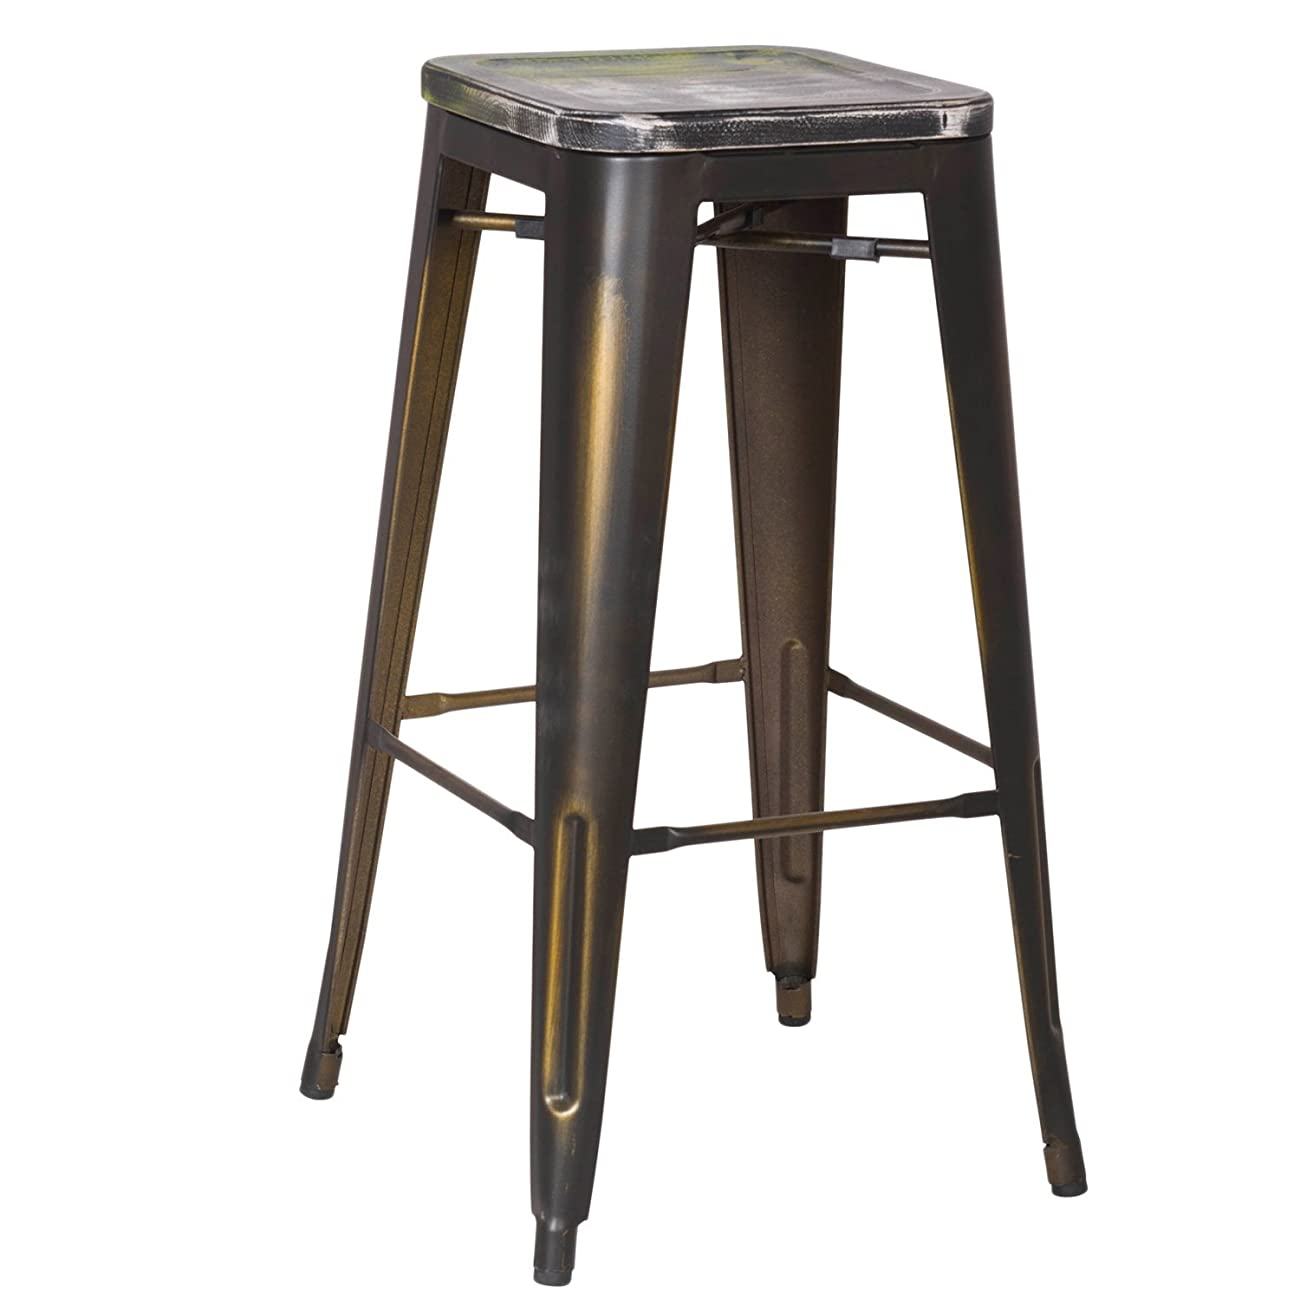 2016 NEW Adeco 30-inch Metal Counter Bar Stools, Vintage Retro Barstool, Distressed copper, Wooden Seat with a blend of Green (SET OF TWO) 0